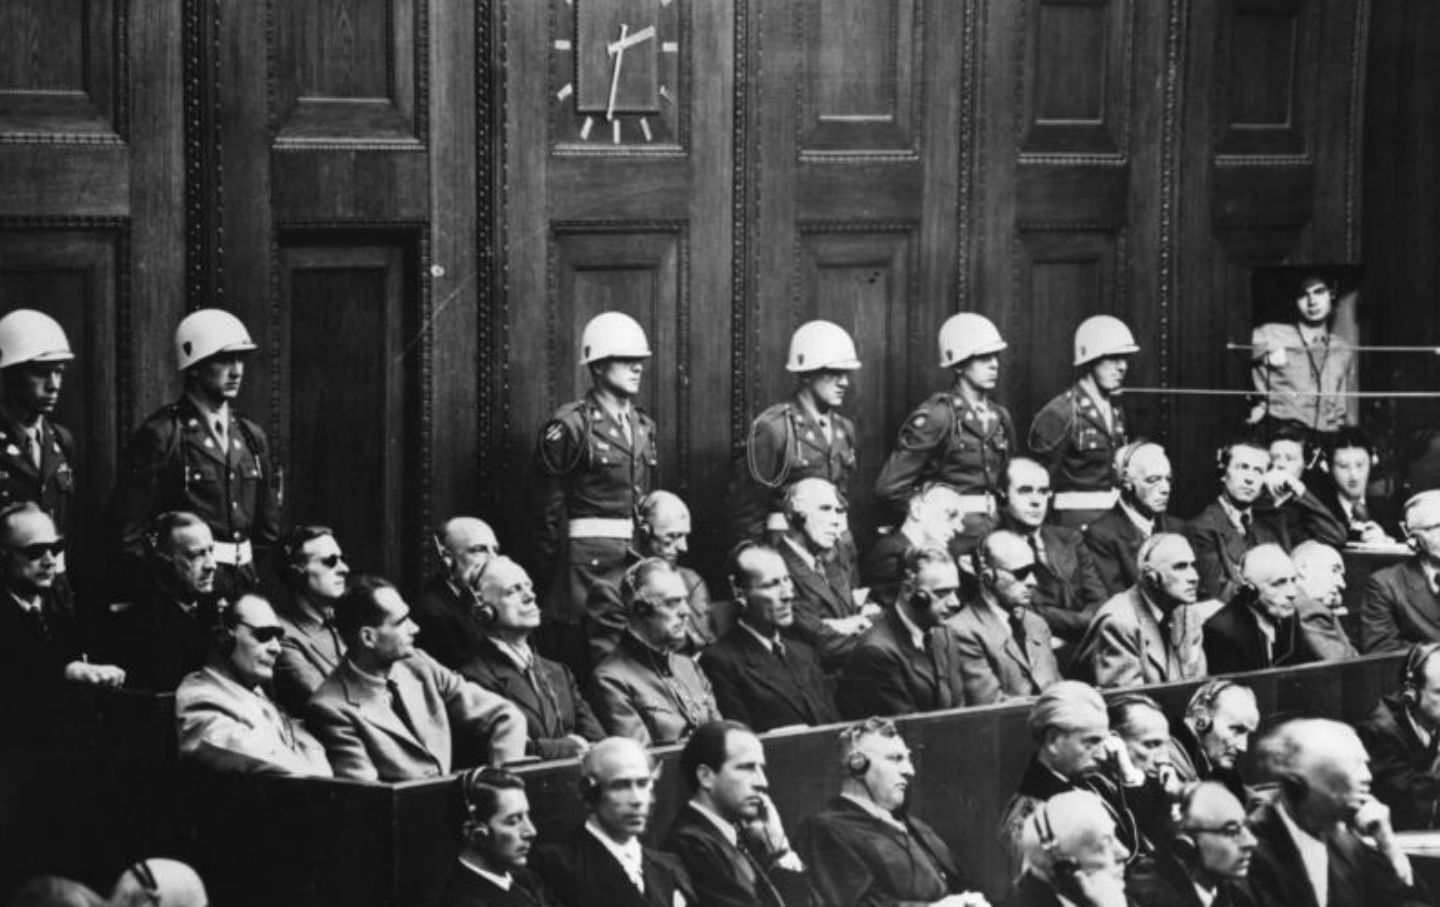 nuremburg war trials more information 20 1945 the nuremberg trials of nazi war criminals begin